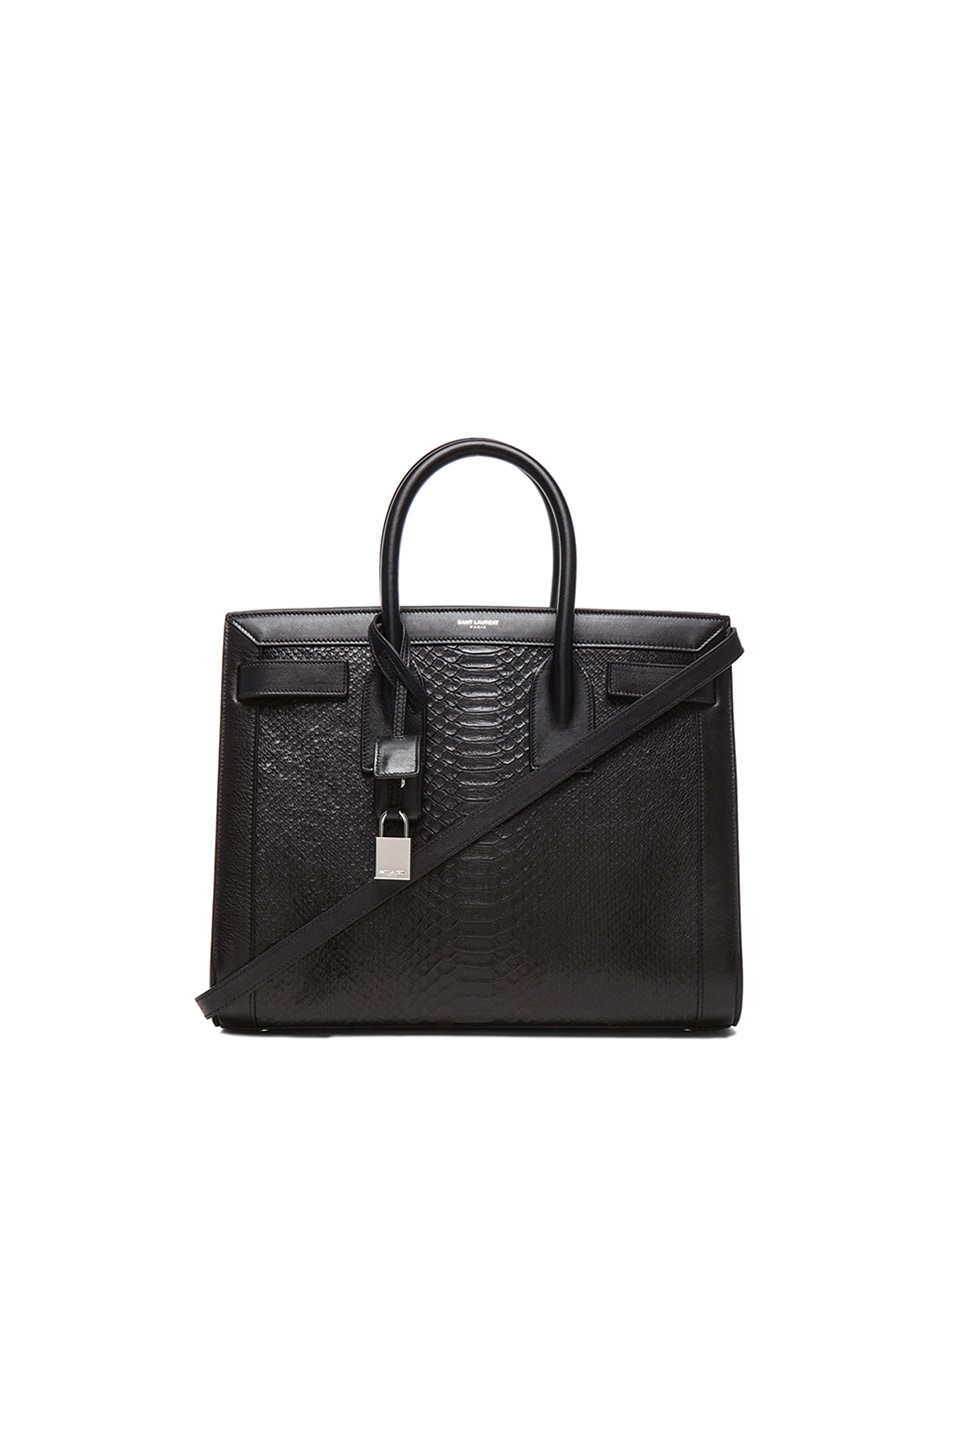 Image 1 of Saint Laurent Small Sac De Jour Embossed Carryall Bag in Python Black